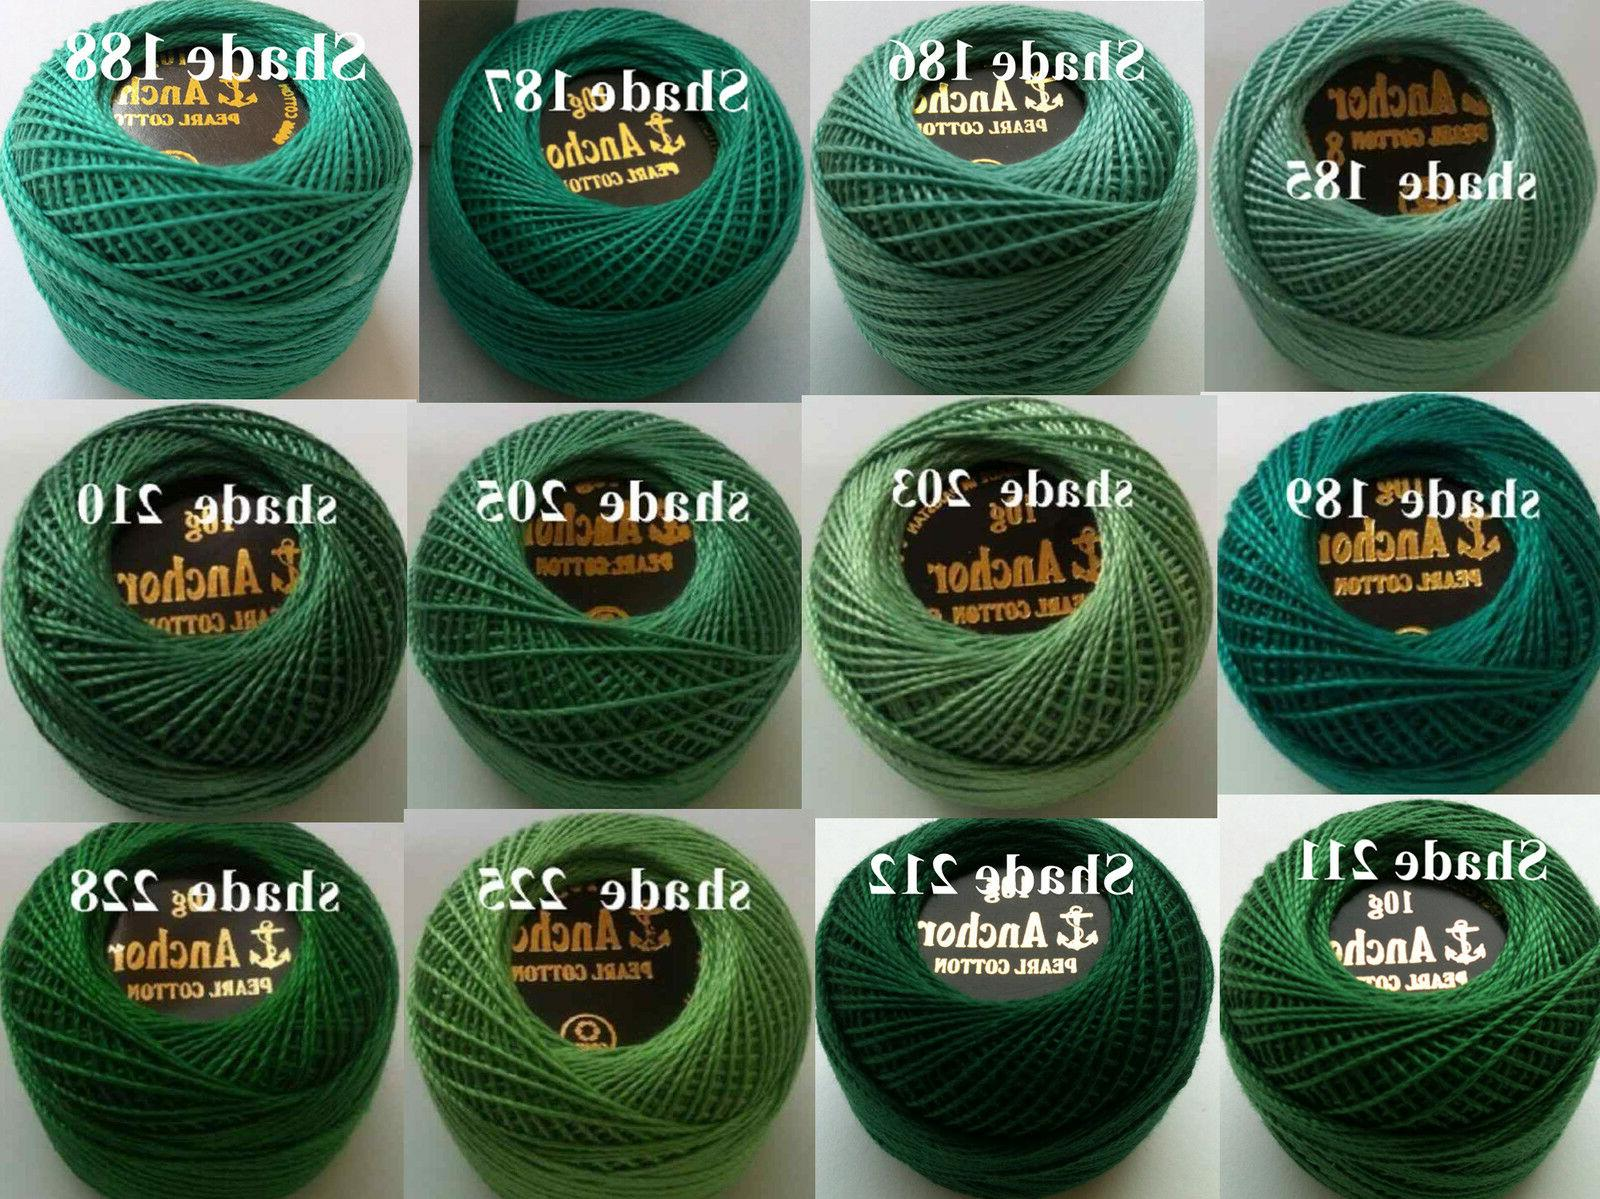 Crochet Embroidery Thread Balls in each Color Postage